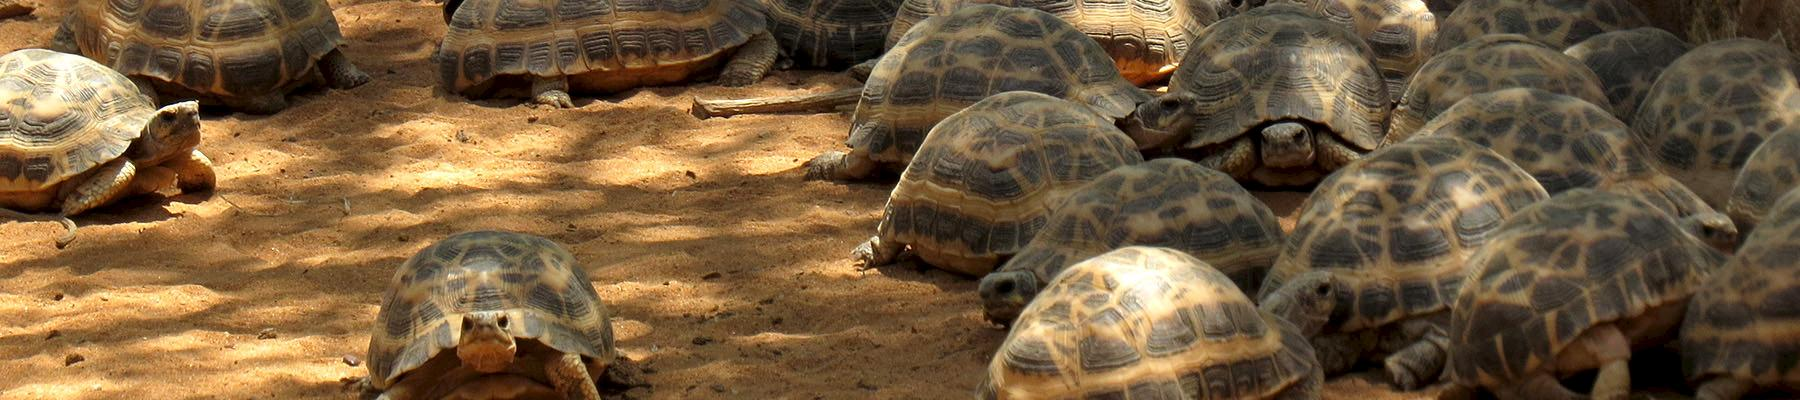 Radiated Tortoises are just one African wildlife species which is regularly smuggled from Africa © anntrueann / CC Generic 2.0